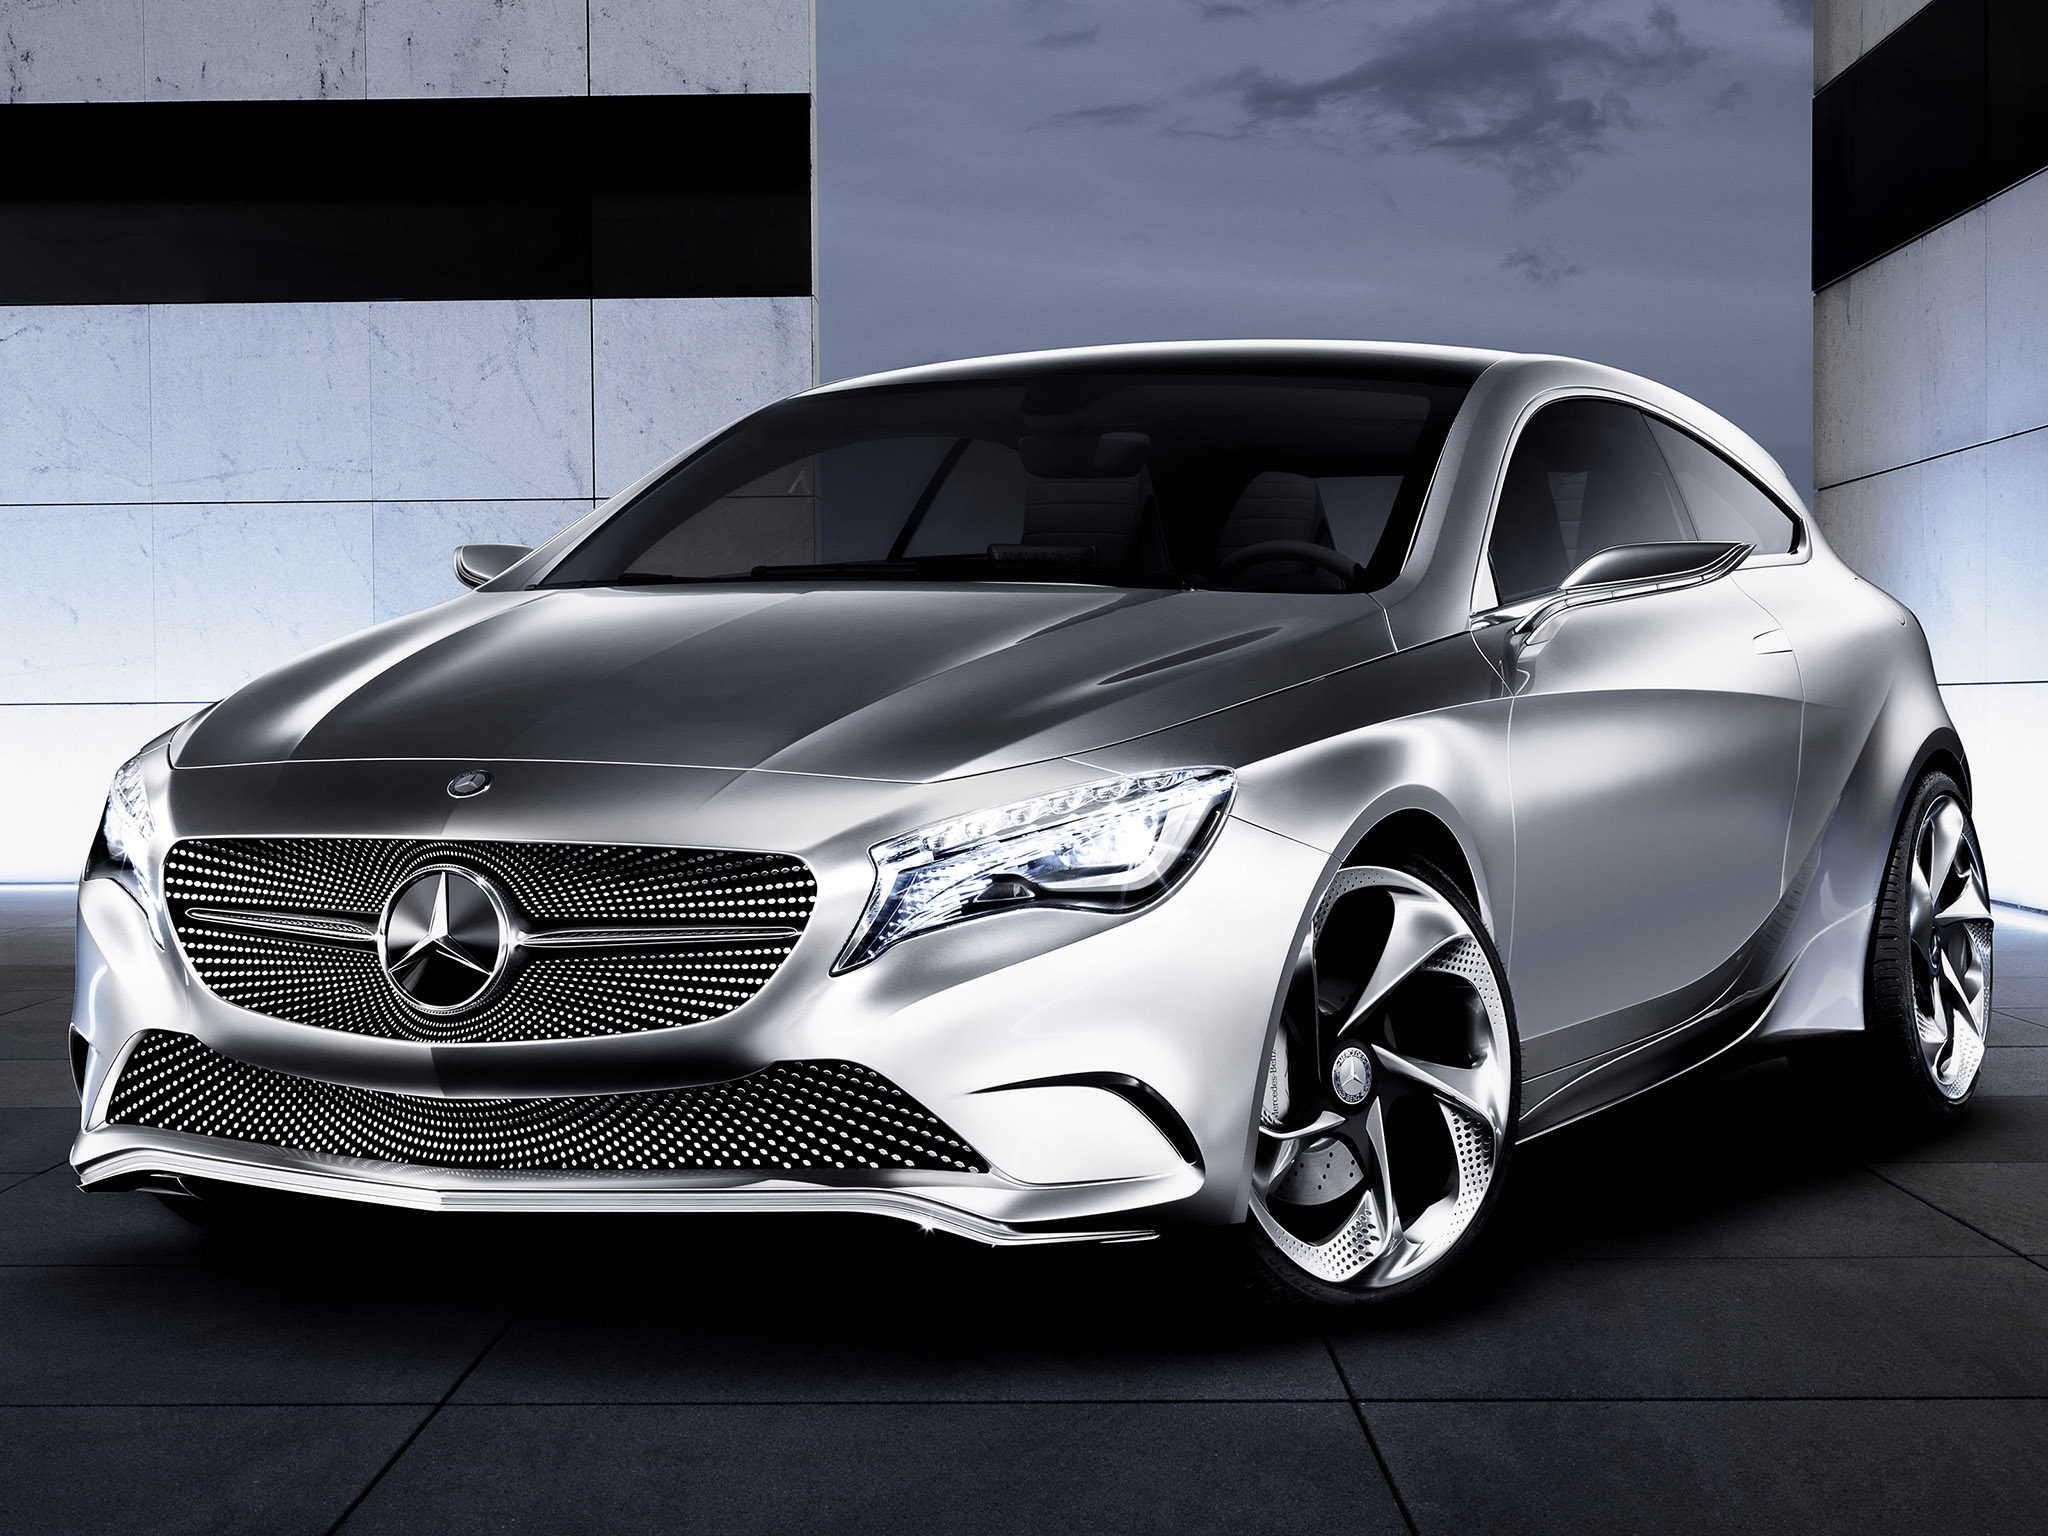 mercedes a klasse concept 2011 mercedes a klasse concept 2011 photo 22 car in pictures car. Black Bedroom Furniture Sets. Home Design Ideas